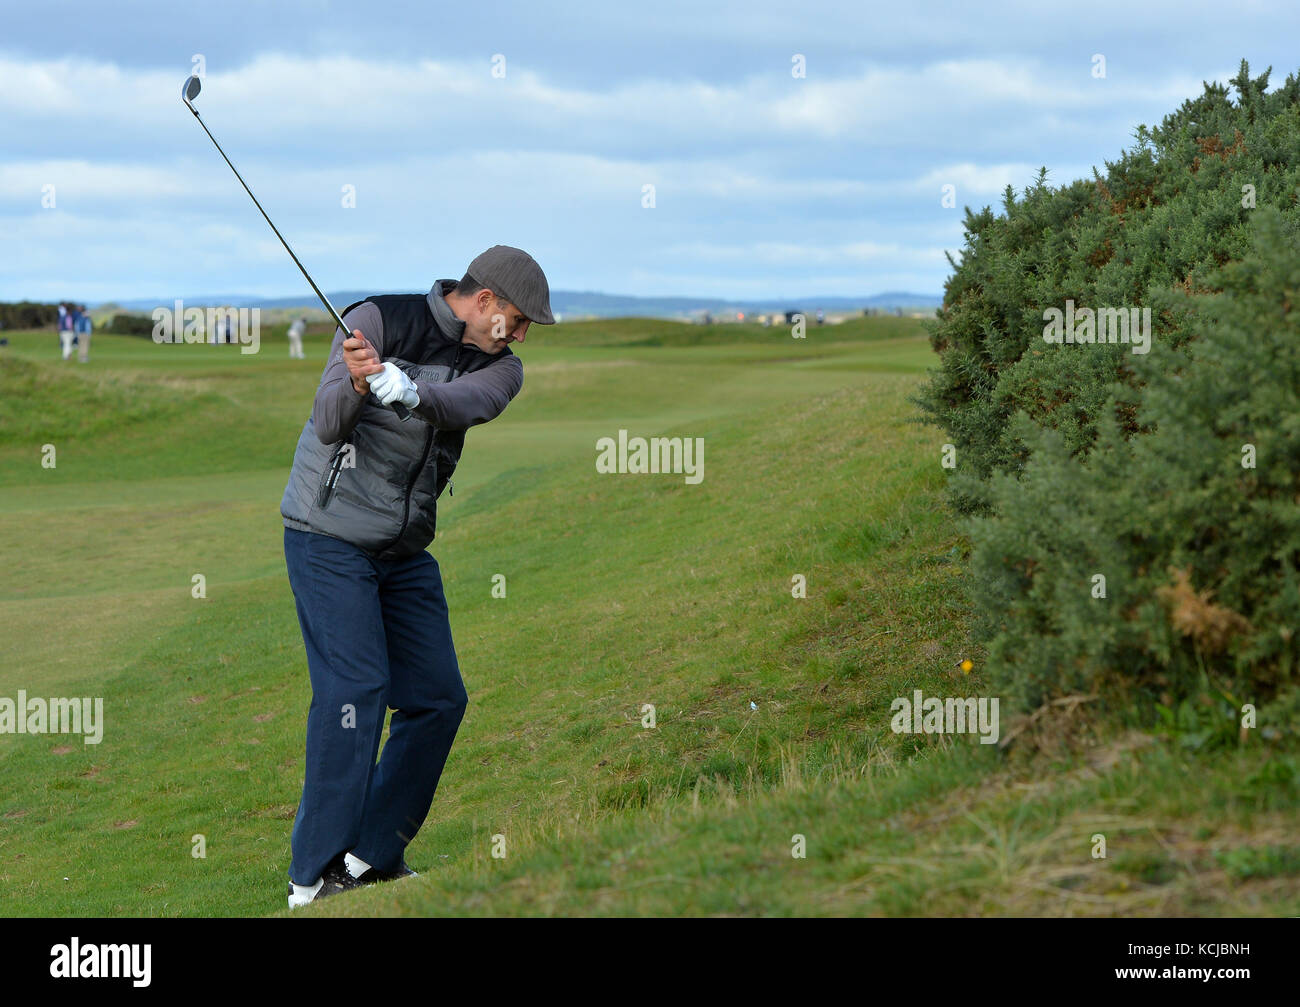 Wladimir Klitschko takes a shot off the fairway during day one of the Alfred Dunhill Links Championship at St Andrews. - Stock Image